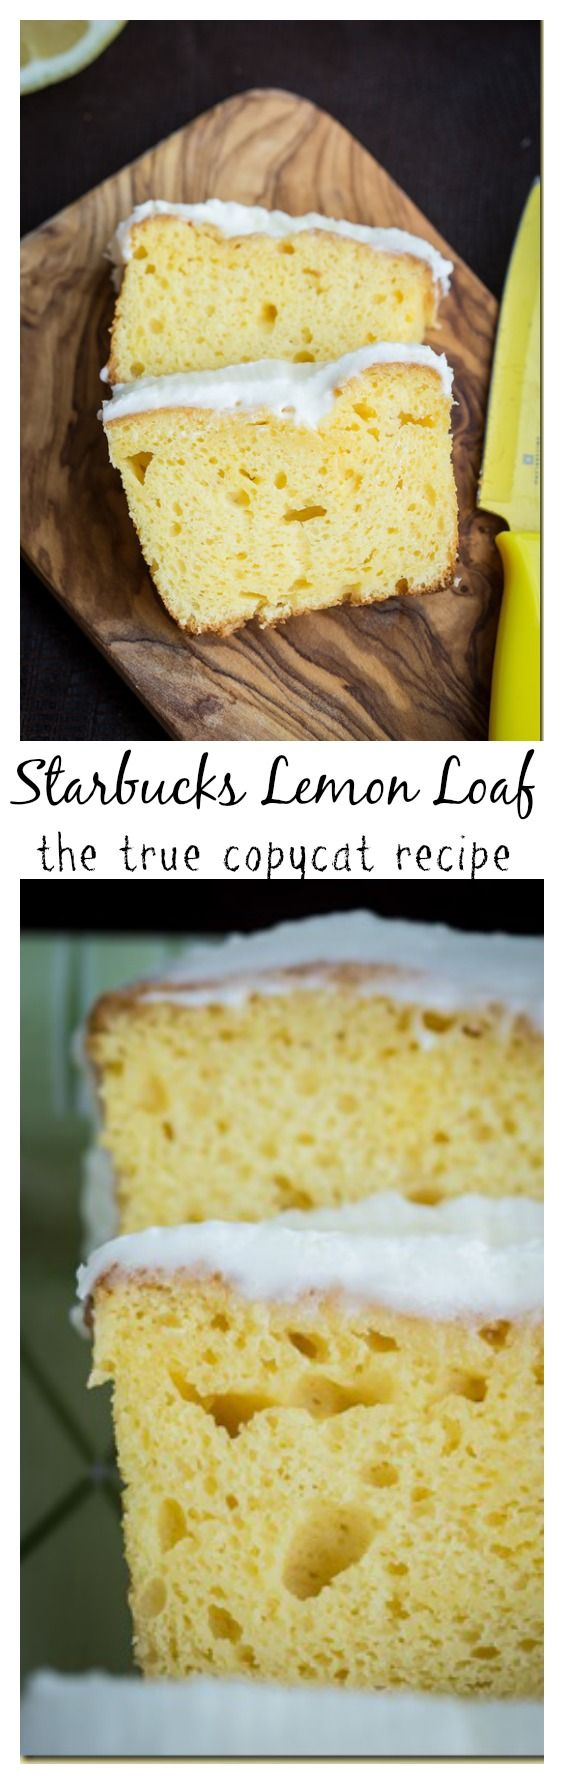 There's a reason why this cake got pinned more than 40K. Fluffy, yet dense, yet moist with a delicious lemony glaze this Starbucks Lemon Coffee Cake will knock your socks off! by LetTheBakingBeginBlog. com